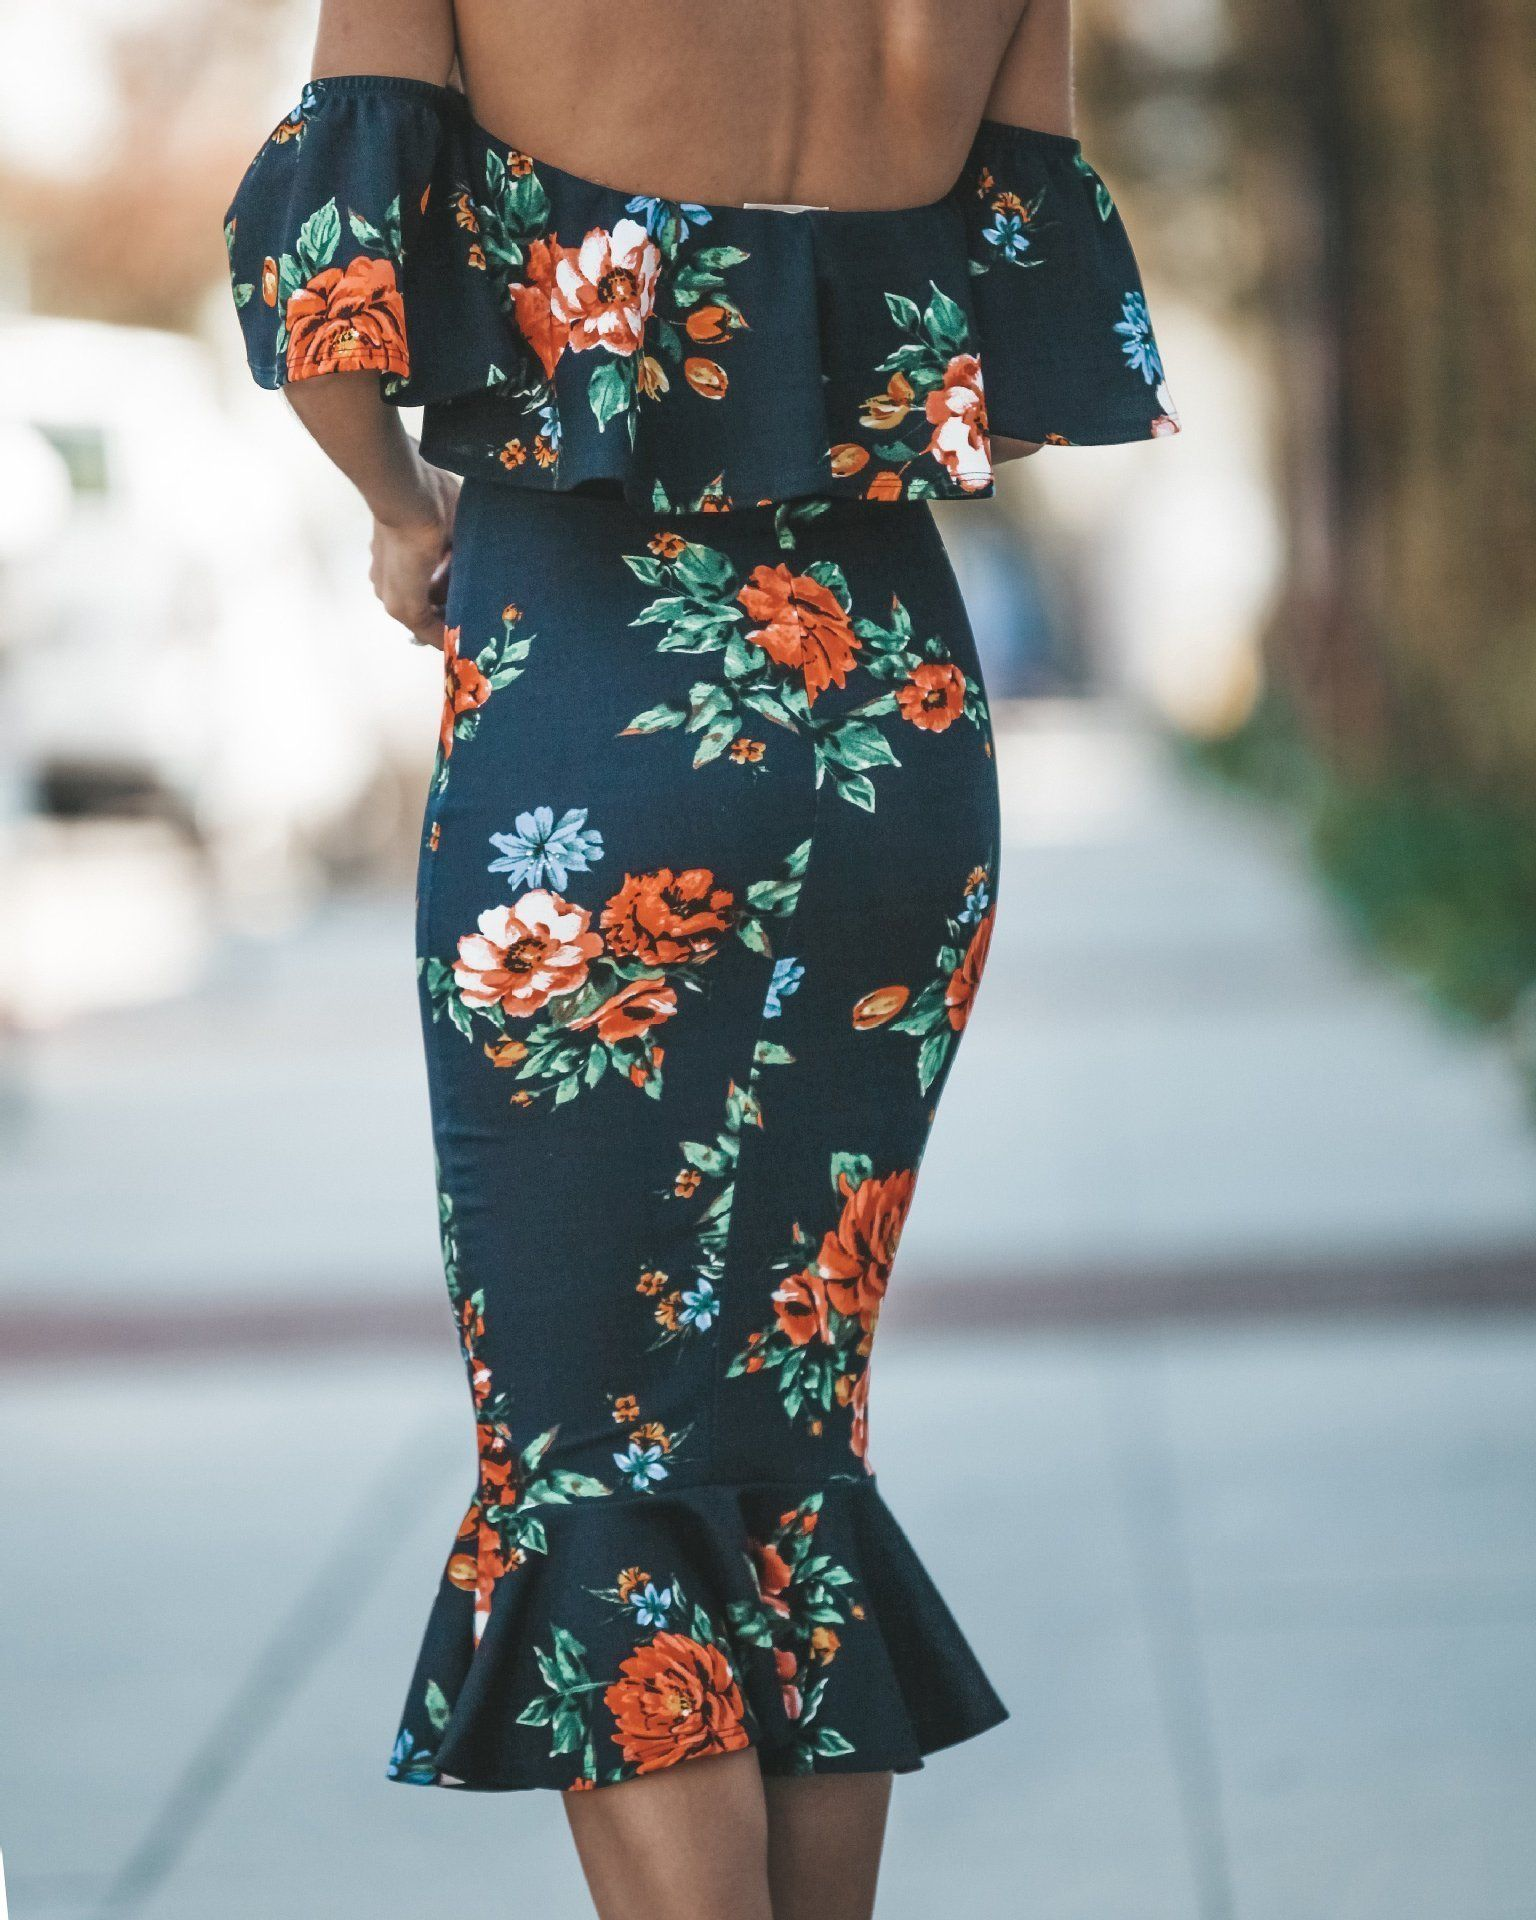 Sexy Off Shoulder Floral Print Bodycon Midi Dress #Bodycon Dresses #Bodycon #Clothing #DRESSES #Fashion #Floral Dresses #Floral Print #Floral #Holiday #LONG BOHEMIAN DRESSES #Off Shoulder Dresses #Off Shoulder #Polyester #Ruffles #Sale #Sexy #summer #190131 #